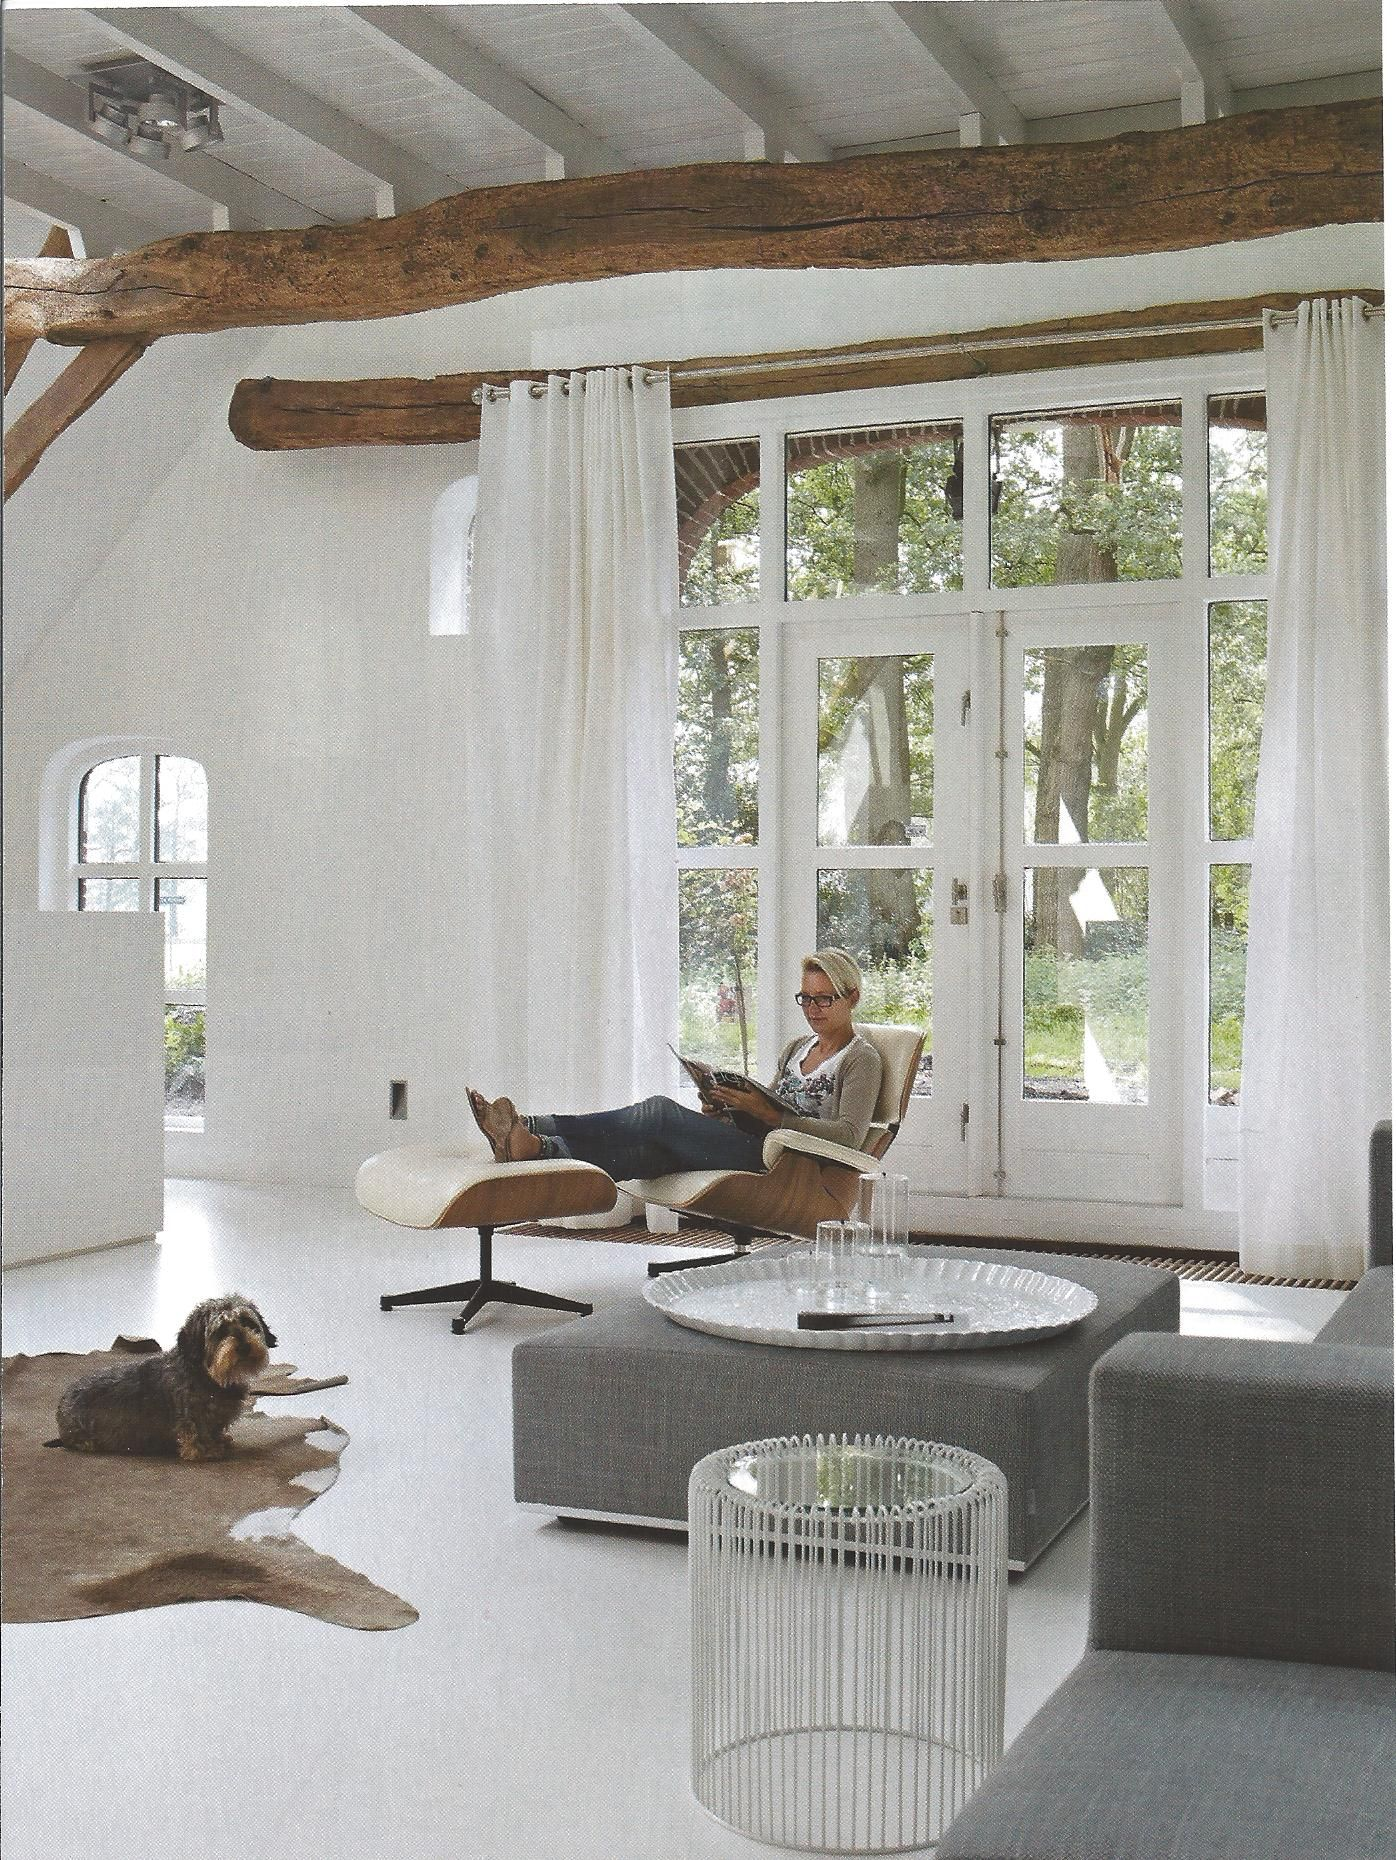 mmm what a tranquille atmosphere from eigen huis interieur